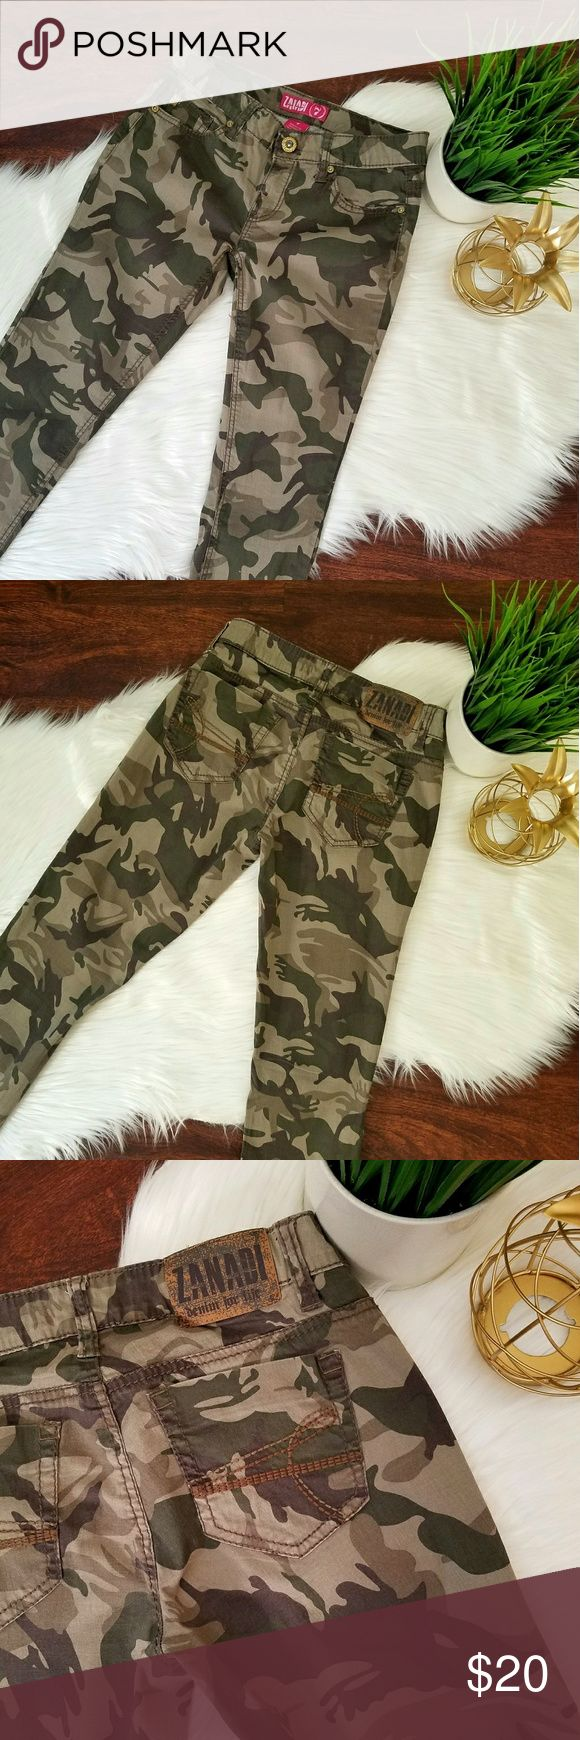 Camo Skinnies 🍂🍃 Camo skinny pants. They look like jeans, but are actually a cotton spandex elastic material. Super comfy and fitted! Pair with a sweater or jacket and you'll be styling for fall! Zanadi Jeans Skinny